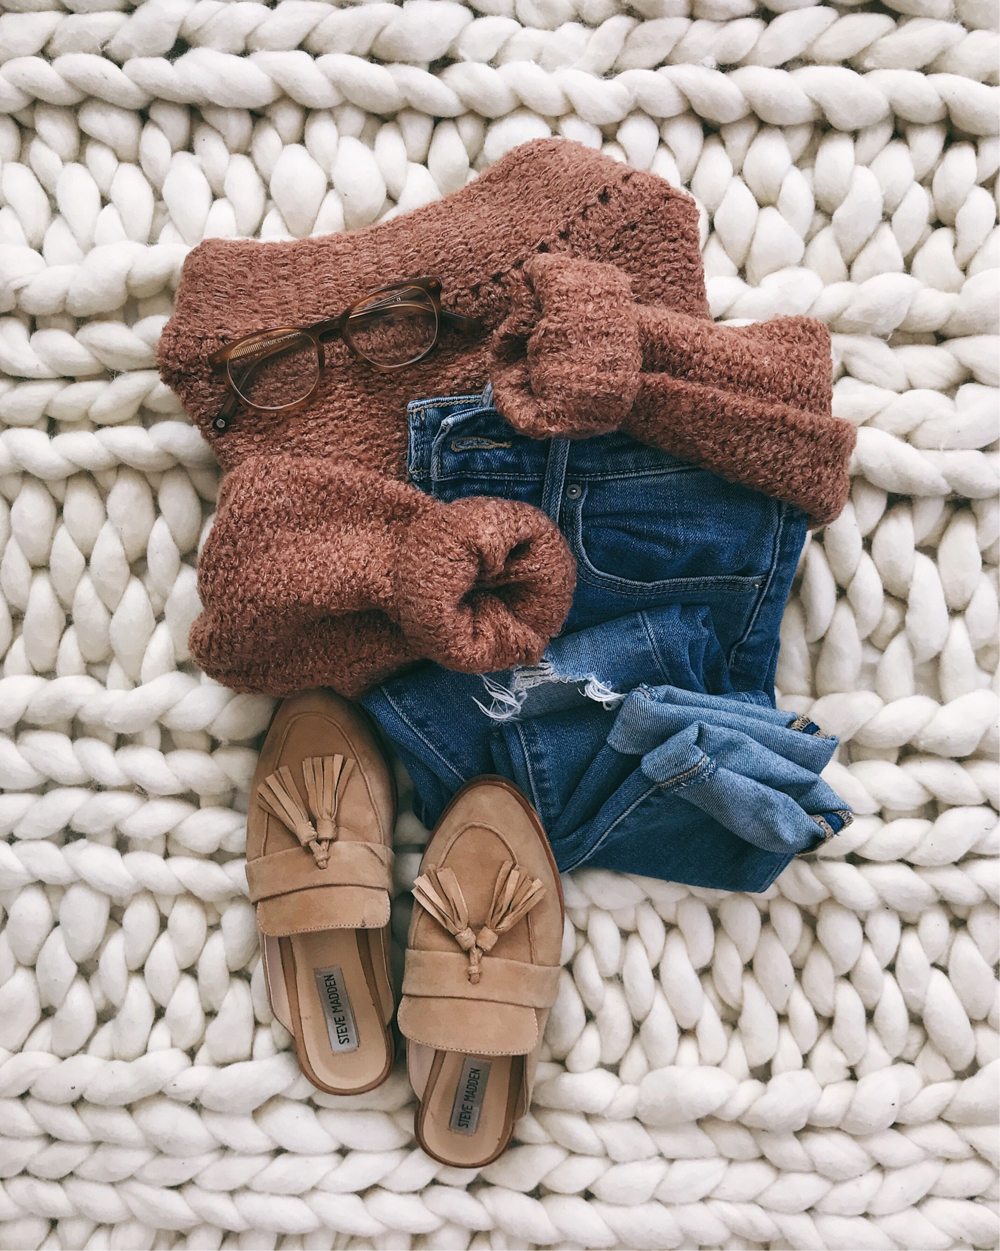 livvyland-blog-olivia-watson-fall-outfit-idea-cozy-winter-sweater-blush-marsala-neutral-backless-loafer-slide